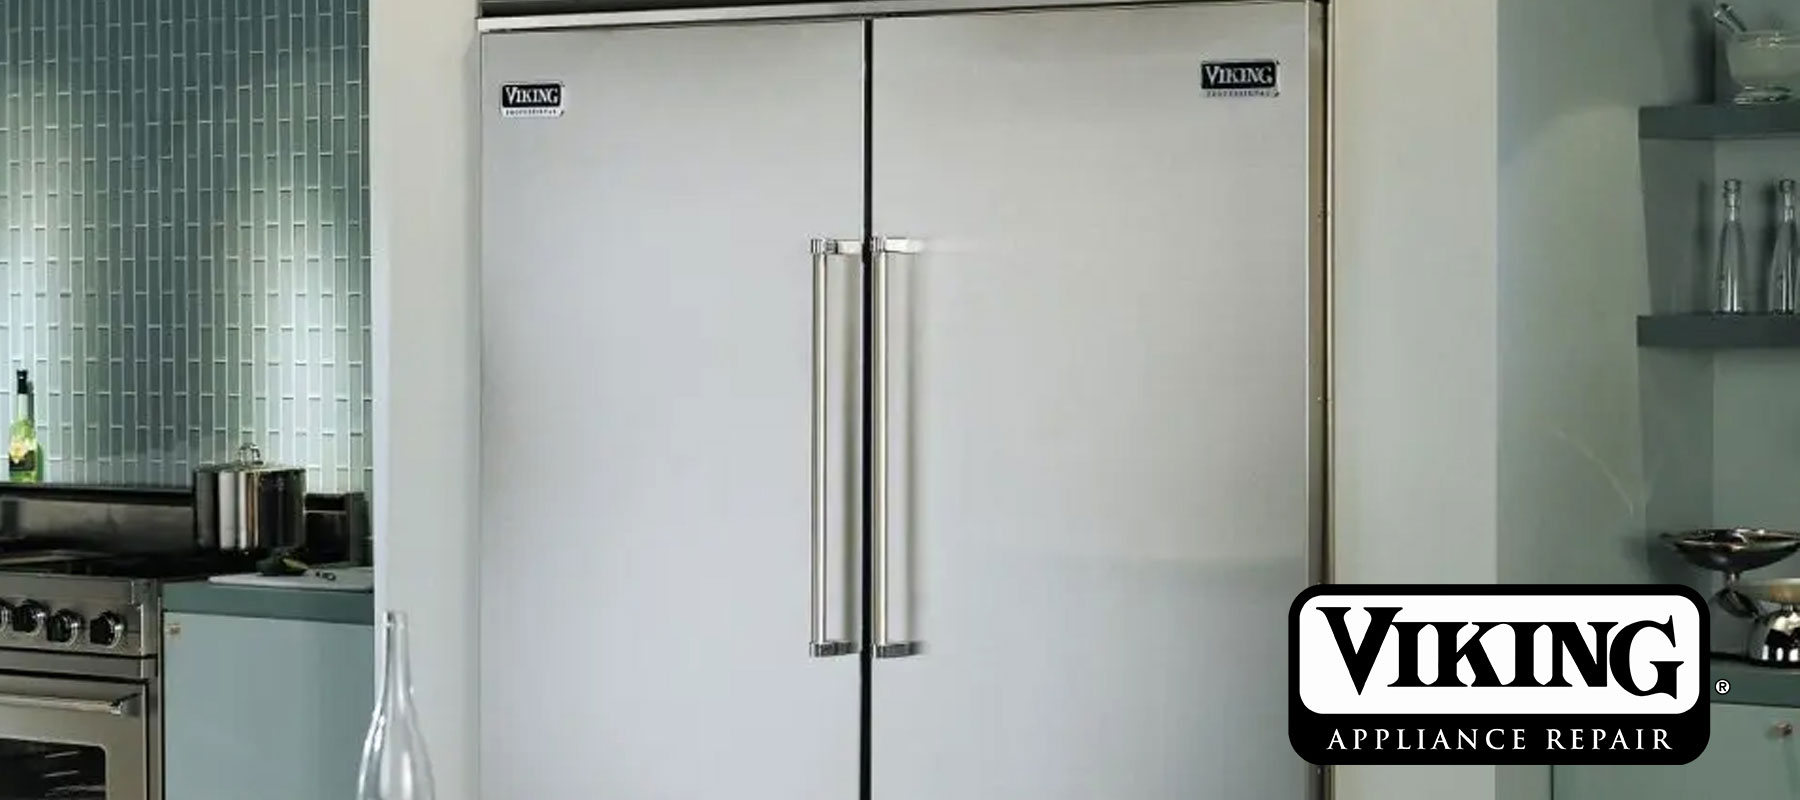 Why Viking fridge Its Making Some Noise And Not Working How to handle it   Professional Viking Repair